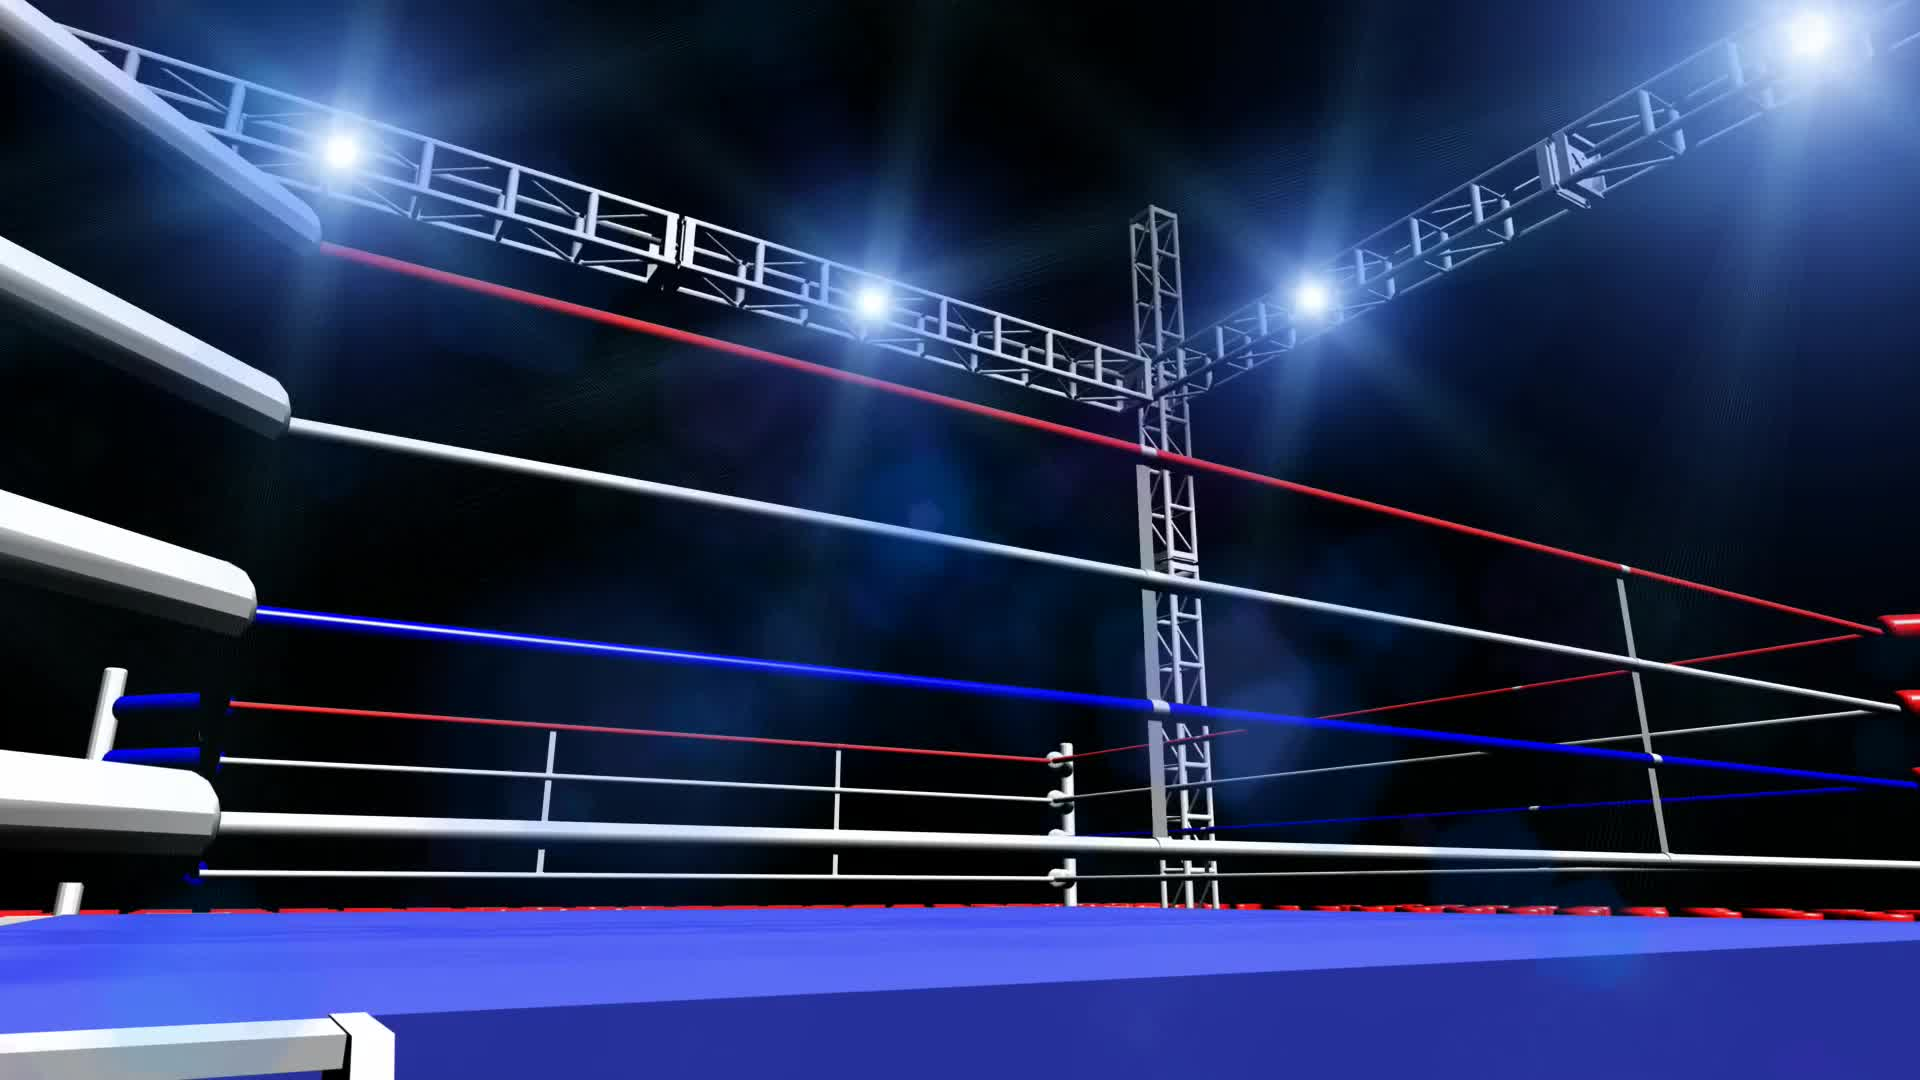 Boxing Ring Video - Watch at Y8.com